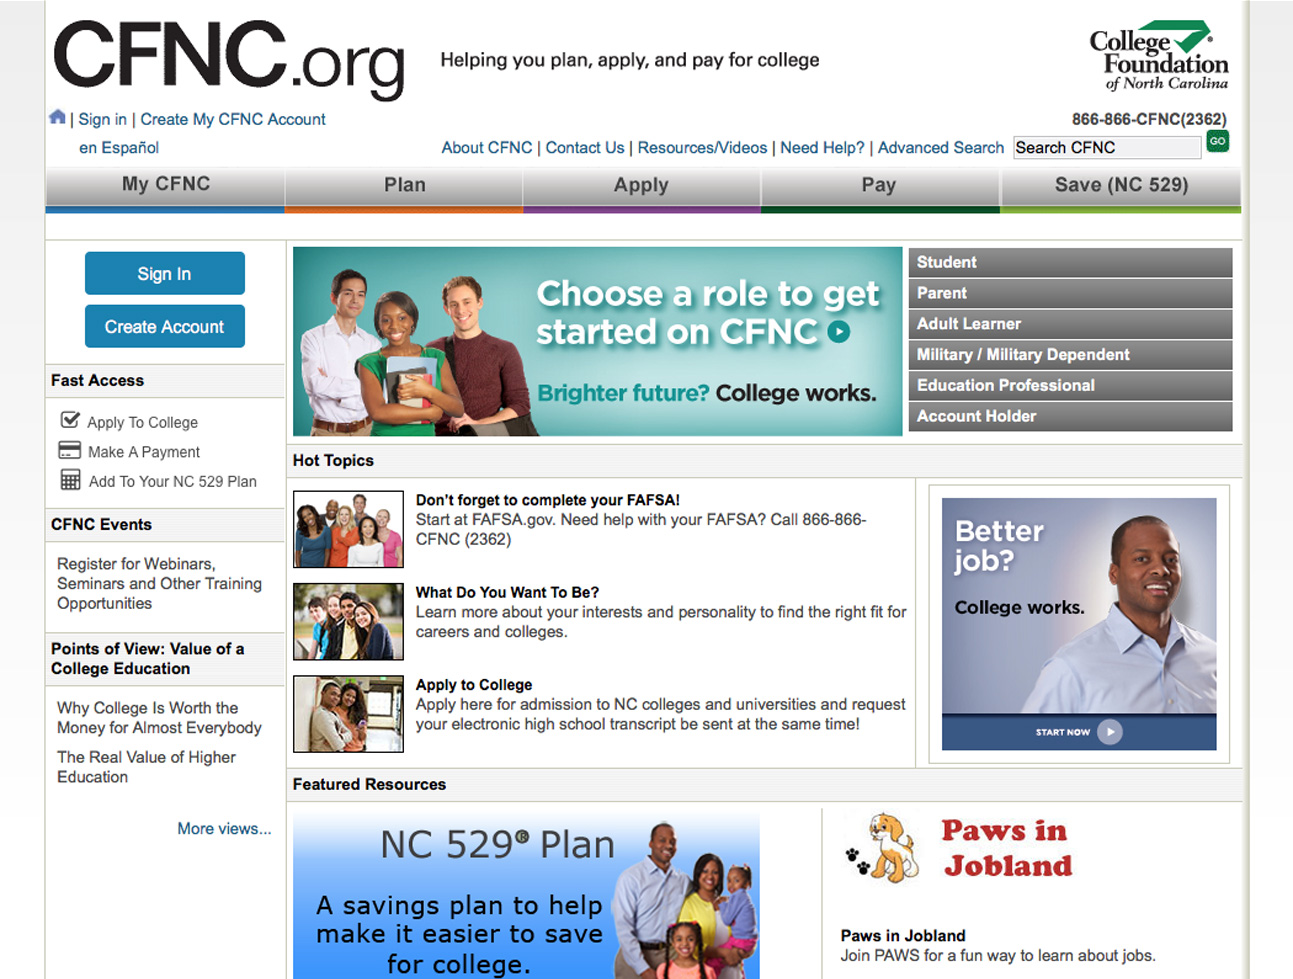 Screenshot of College Foundation of North Carolina Website